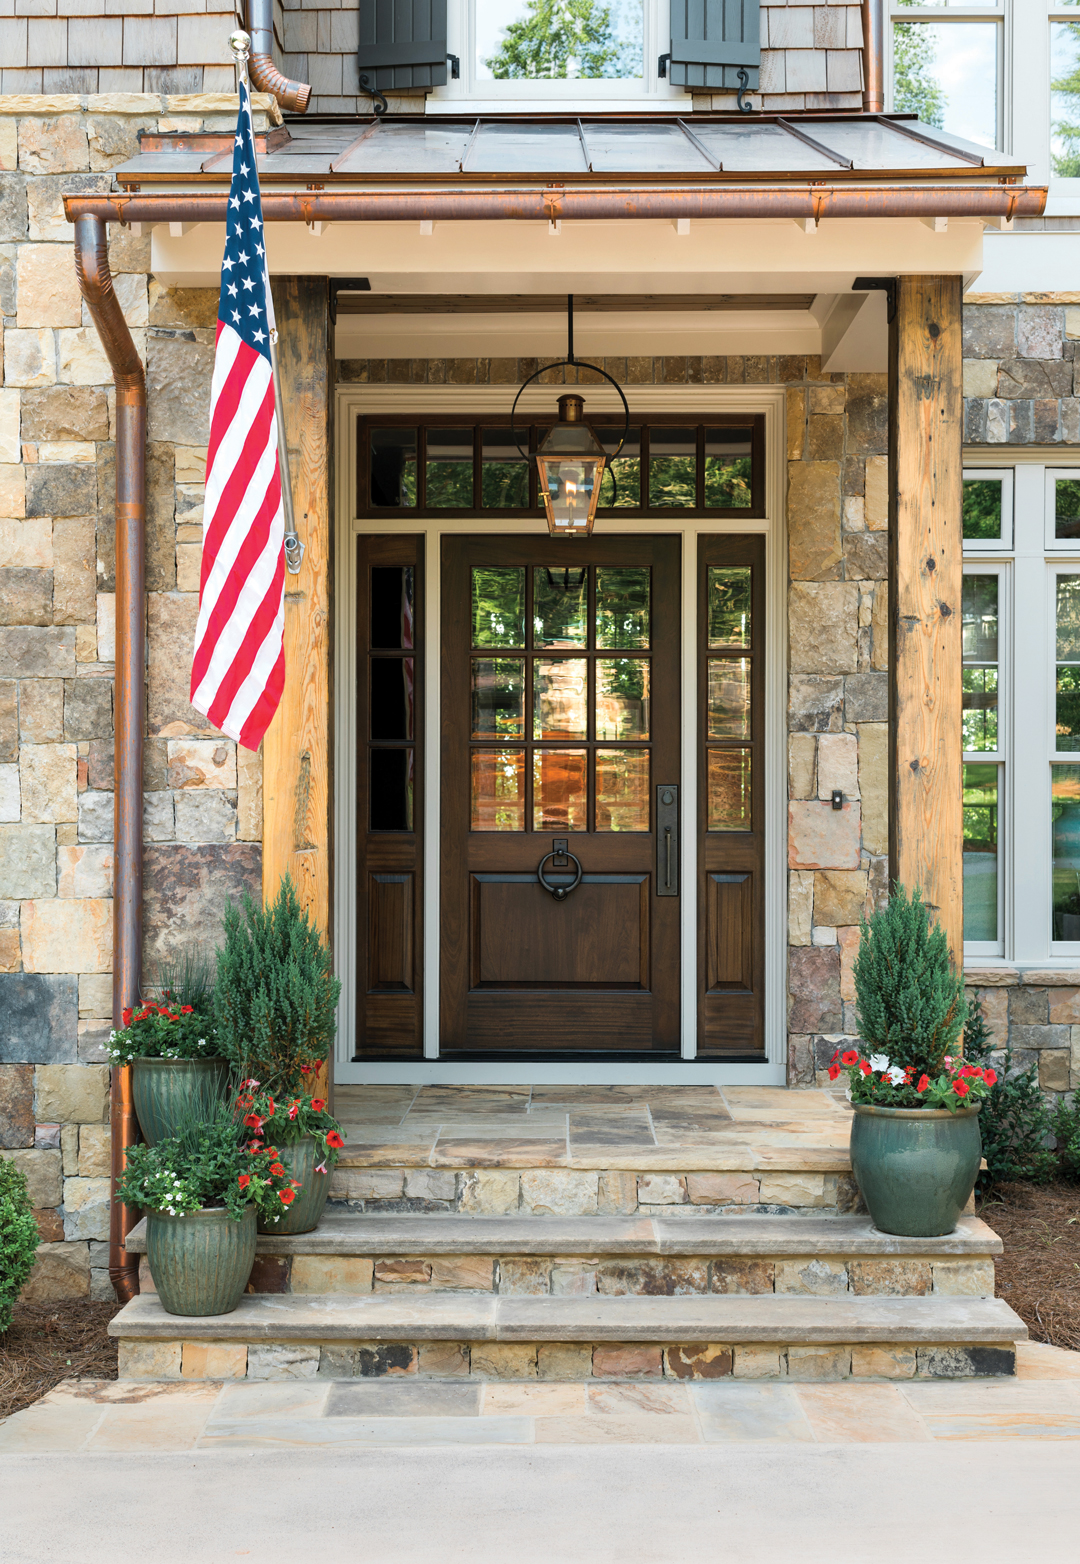 Rustic Lake House Interiors: This Family's Elegant, Rustic Lake Allatoona House Is The